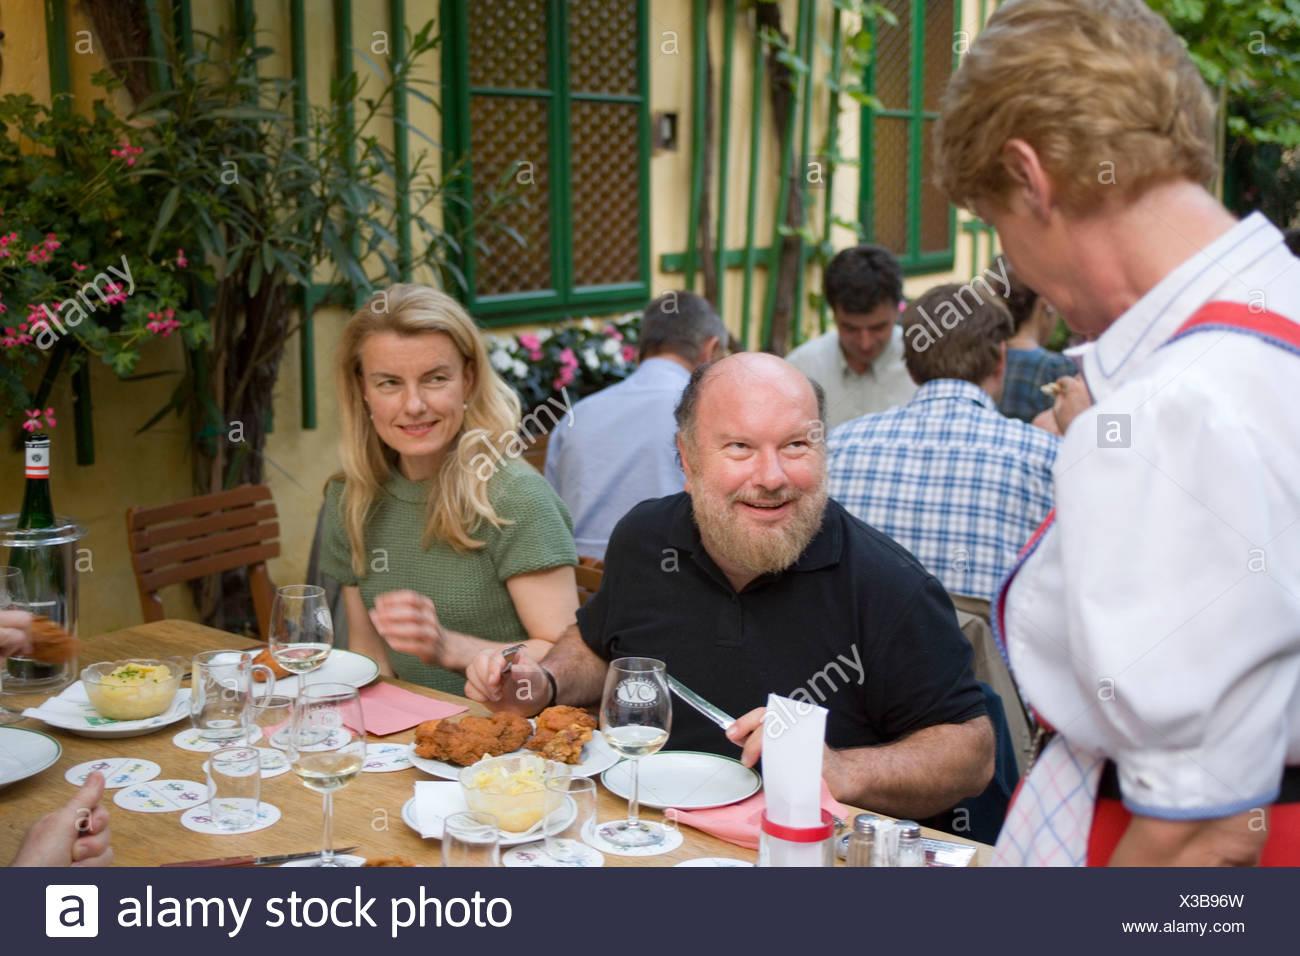 Guests in the garden of Heuriger Mayer am Pfarrplatz, Heiligenstadt, Vienna, Austria - Stock Image